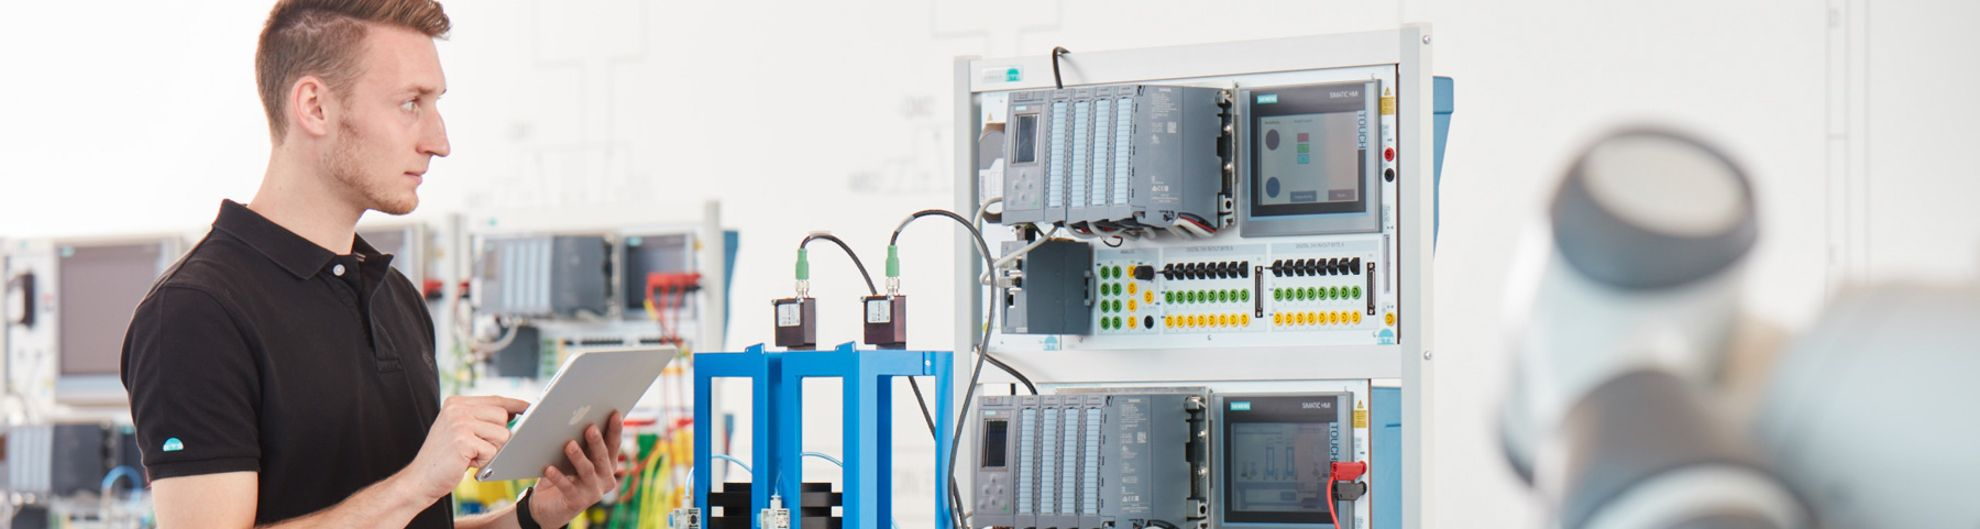 Industry 4.0 - CPS-i40